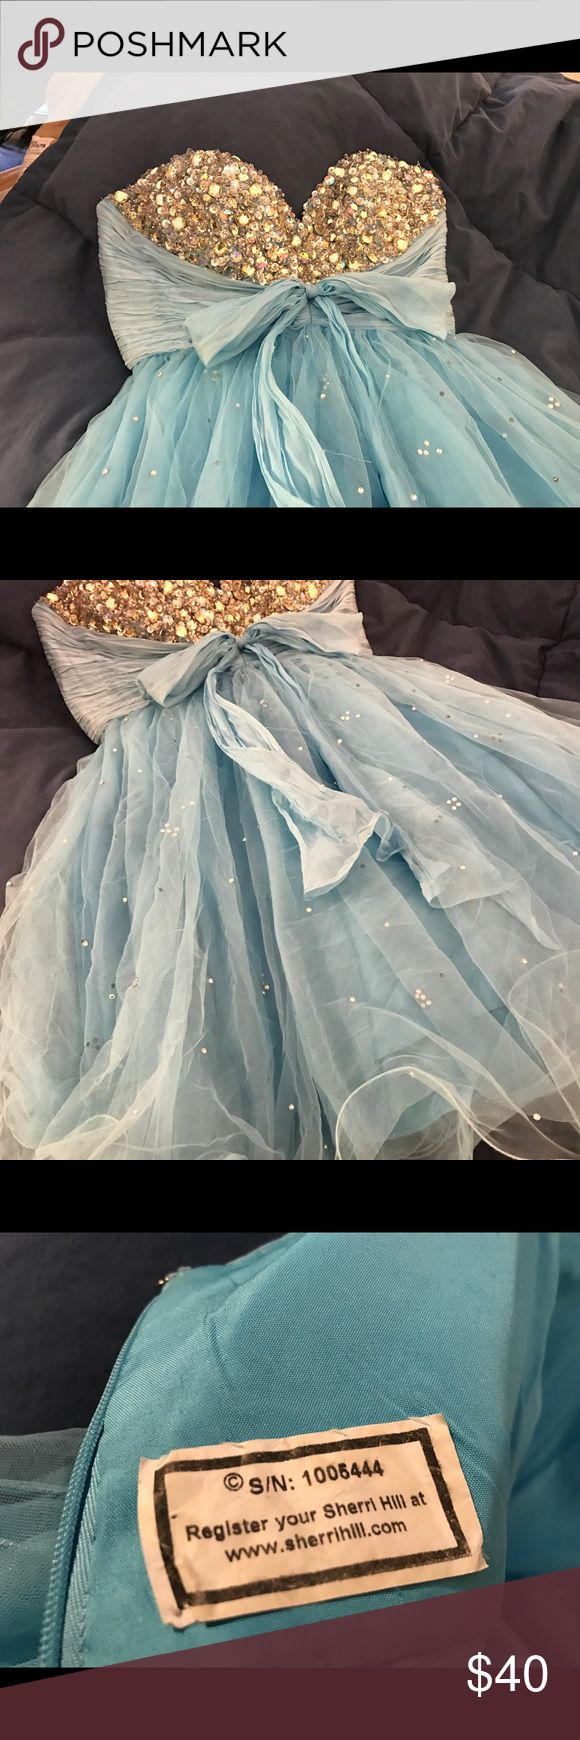 Sherri Hill Dress Cute blue dress with heavily beaded bodice. Sherri hill size tag is missing. Best guess is size 2 or 4. Sherri Hill Dresses Mini